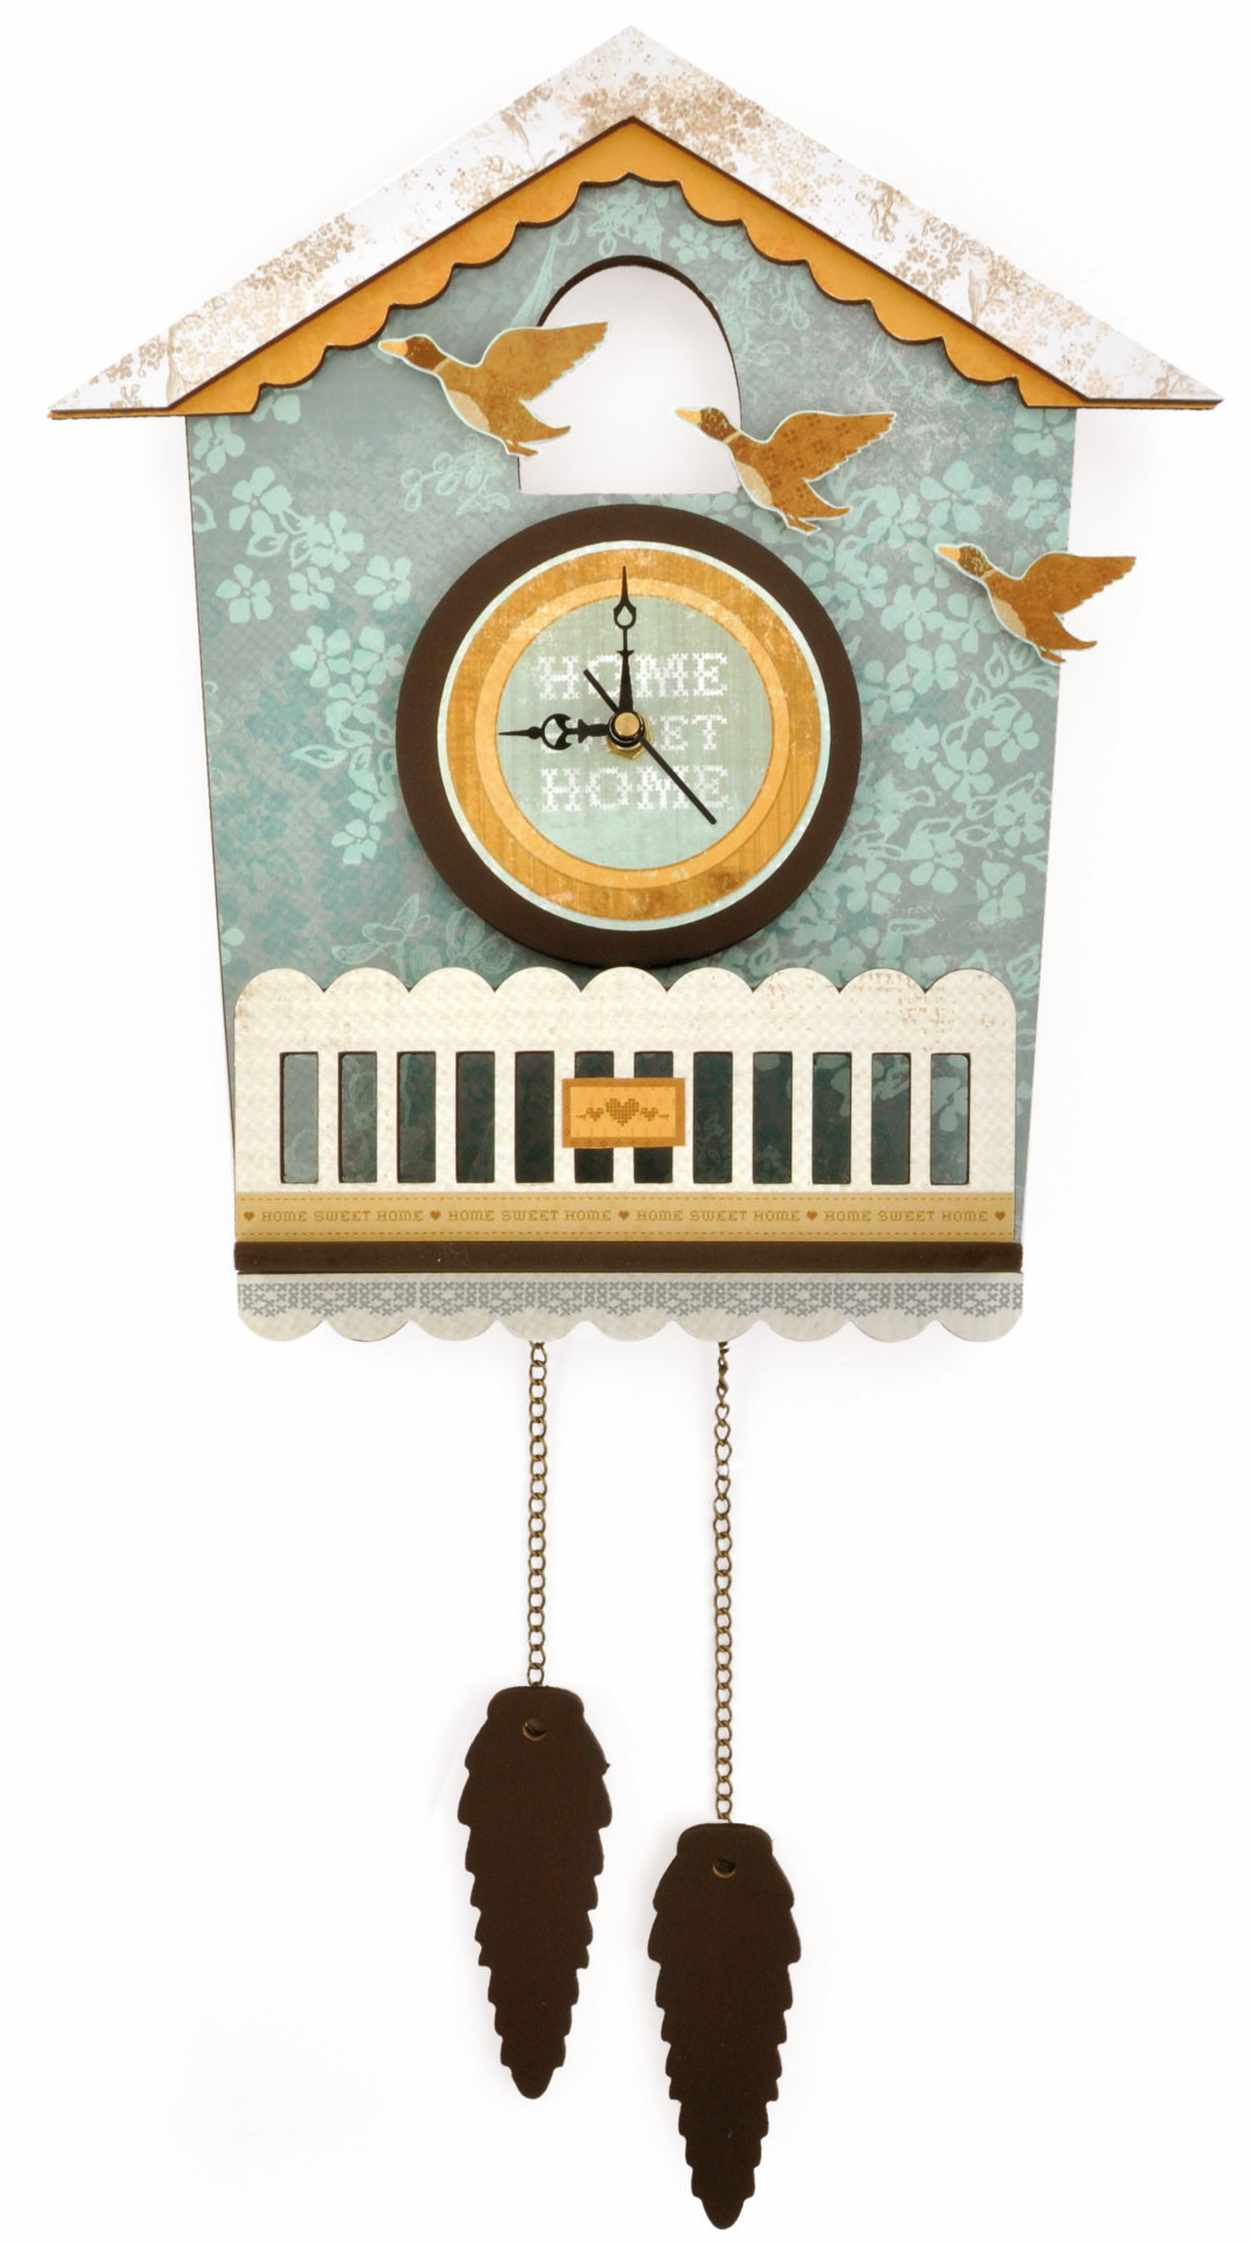 cute cuckoo clock with flying bird ornament for home accessories ideas